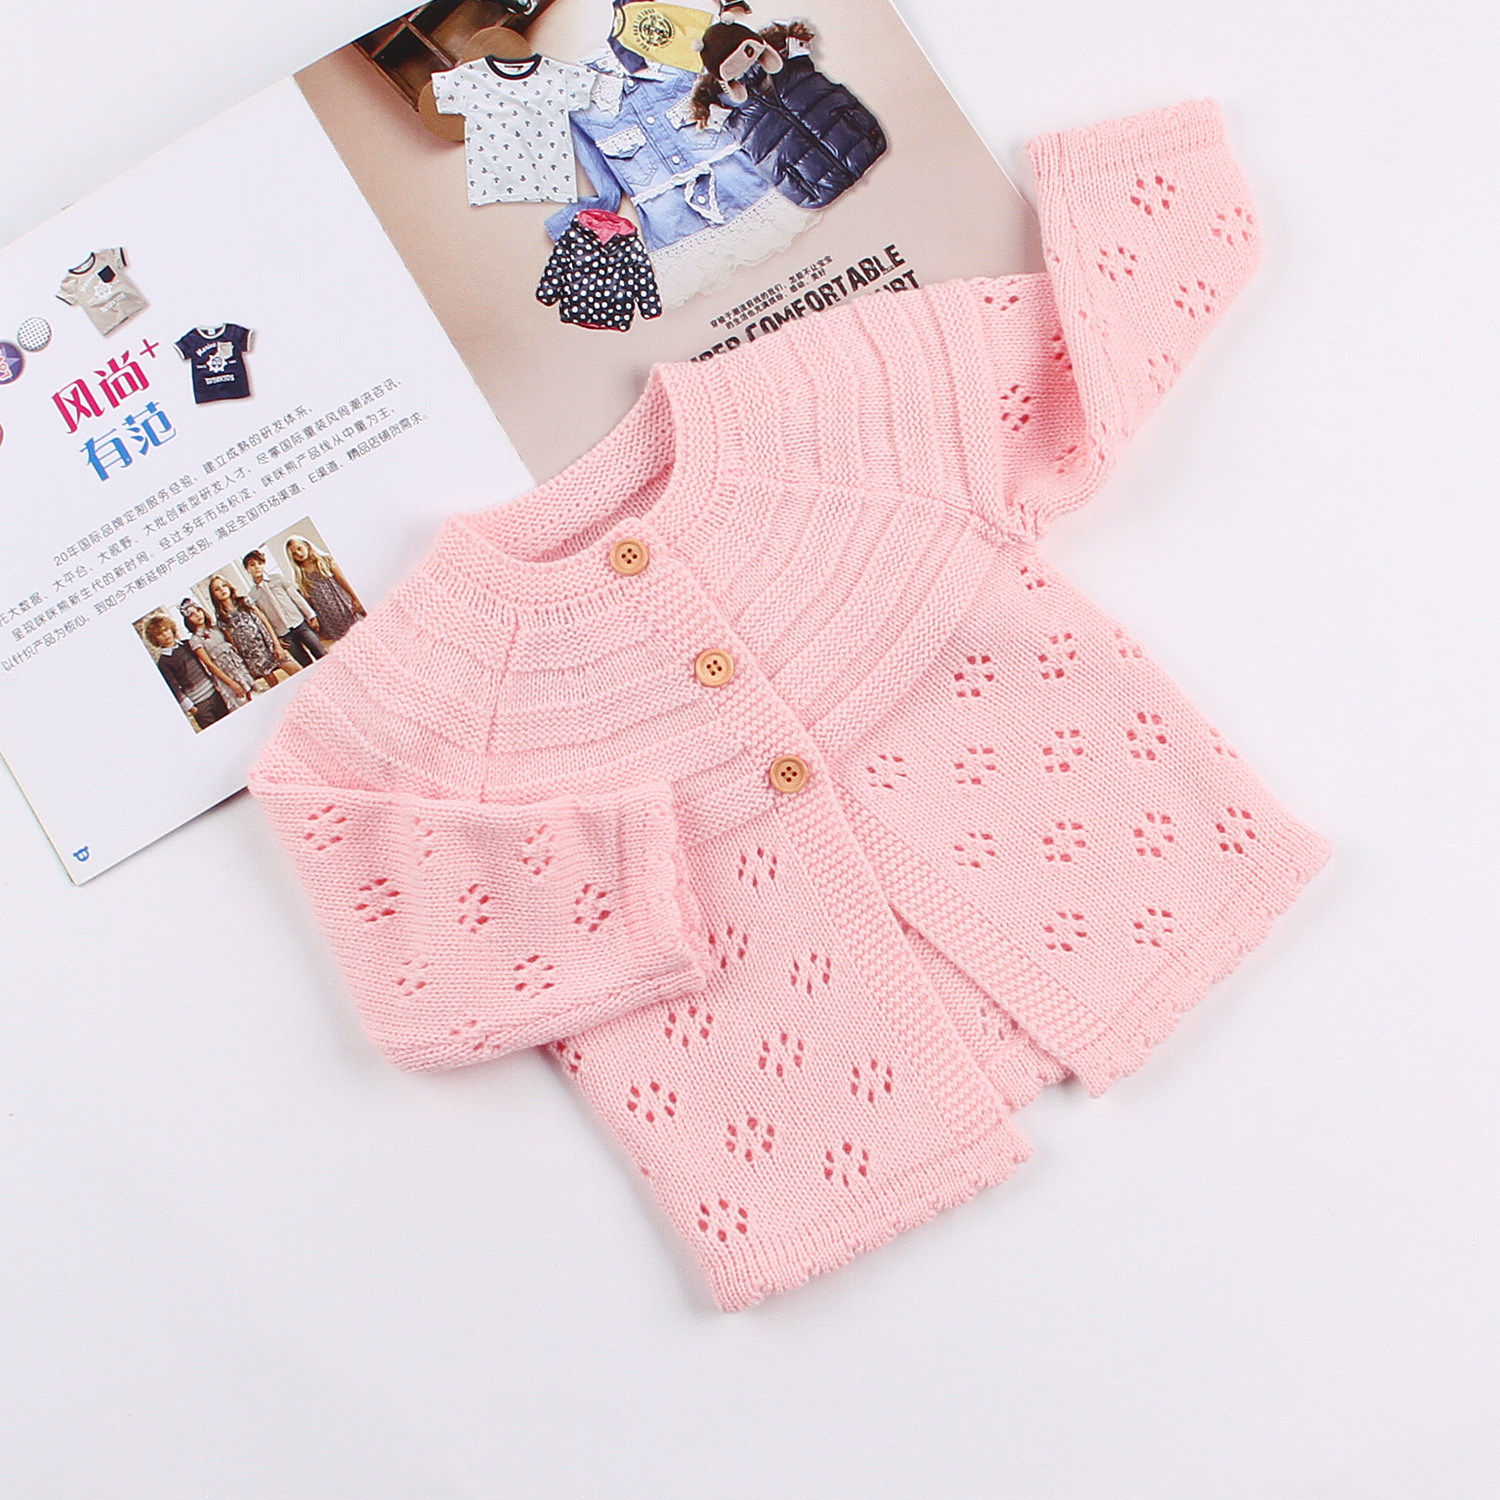 Baby Sweater For Girls Kids Cardigan Clothes Knitwear Childrens Clothing